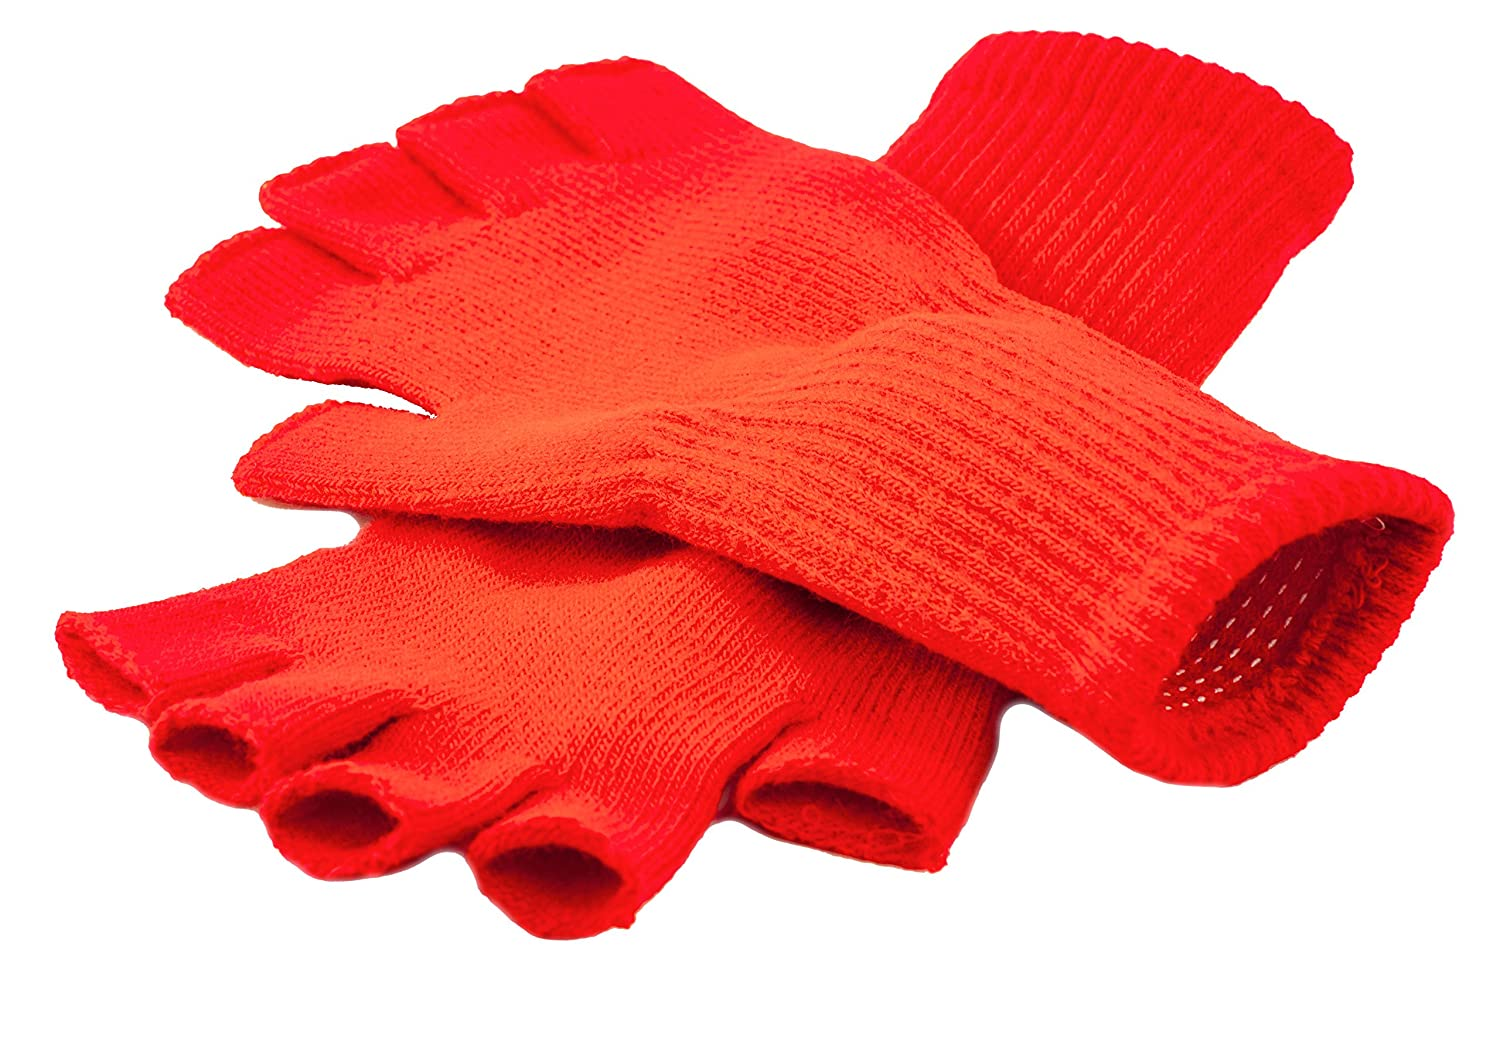 Funny Guy Mugs Warm Stretchy Knit Fingerless Gloves for Women and Men, Multiple Colors Available, One Size Fits Most Blue Glove-5